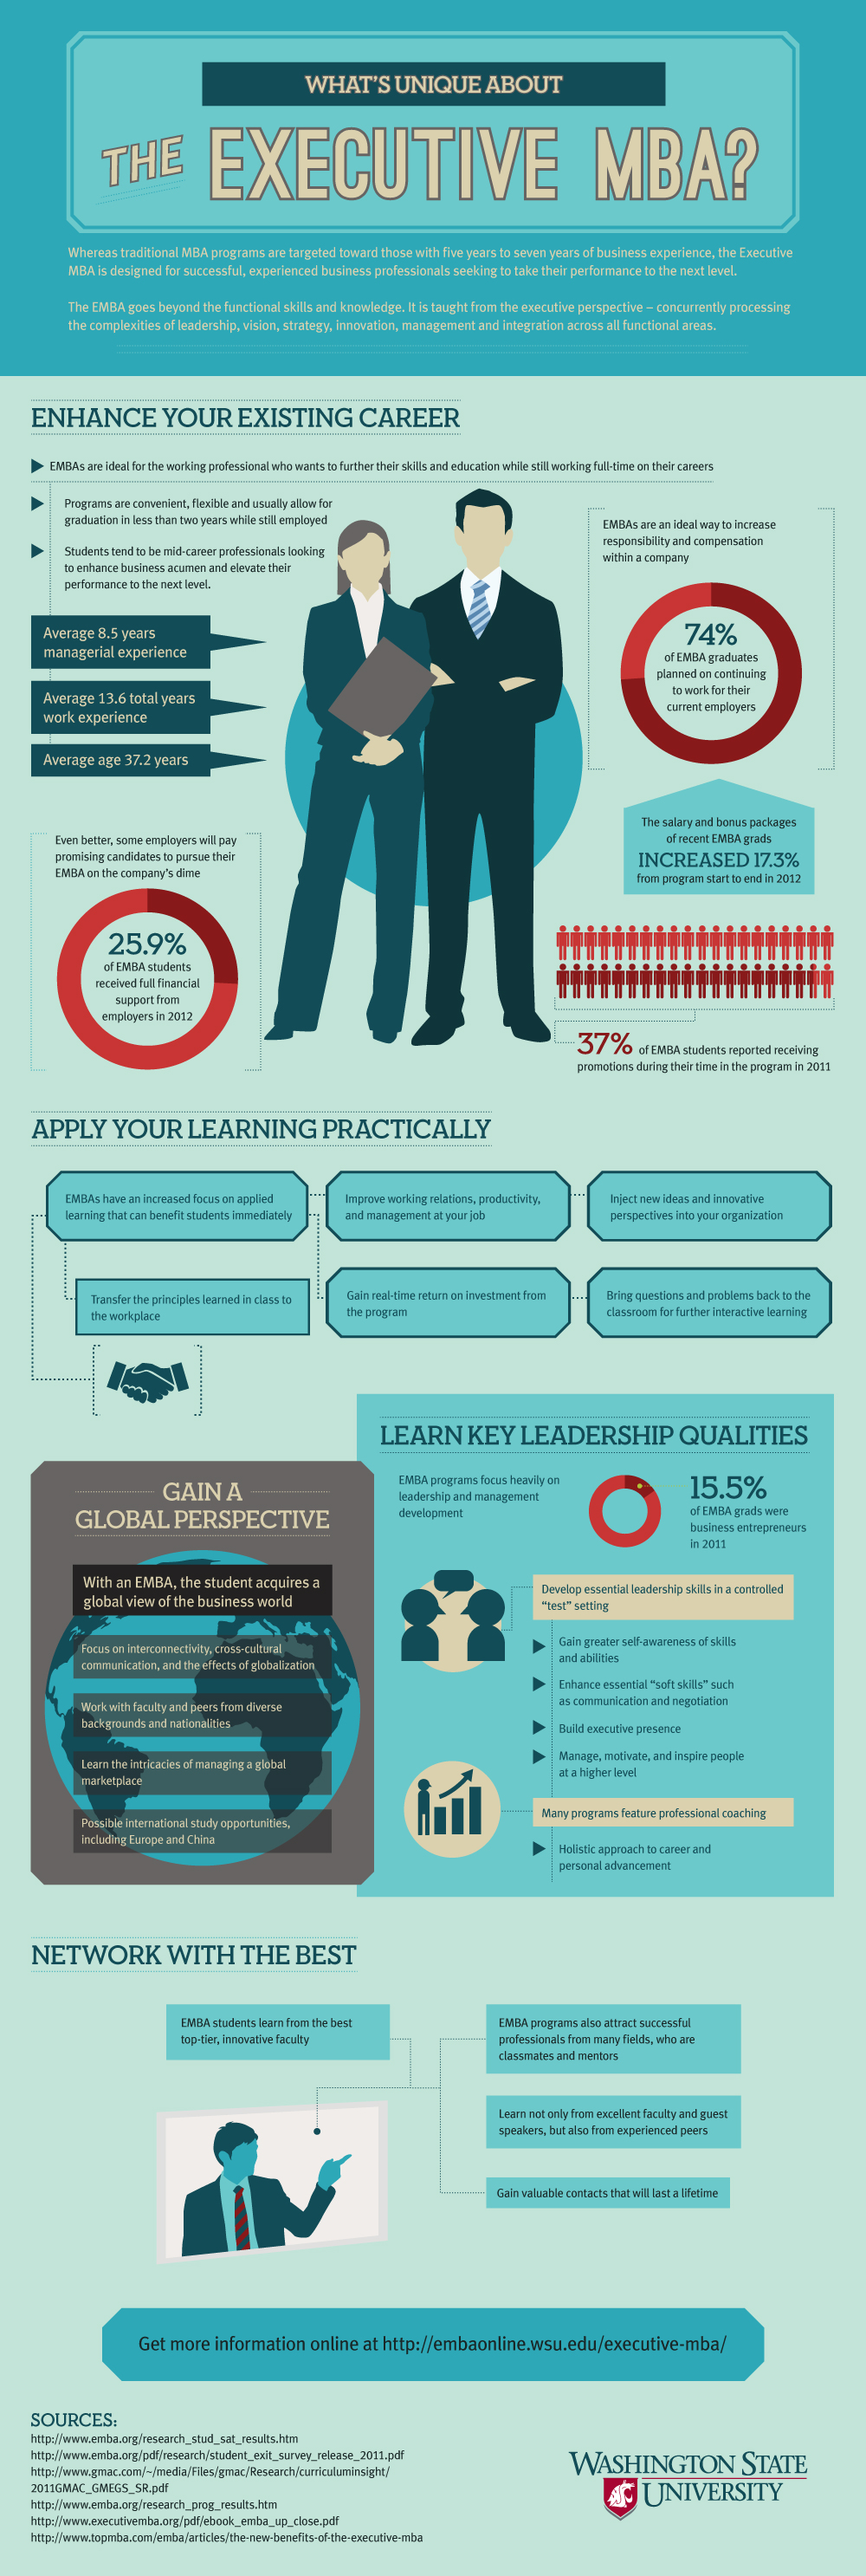 career progression with an executive mba infographic - Mba Career Opportunities Career In Mba Career Path